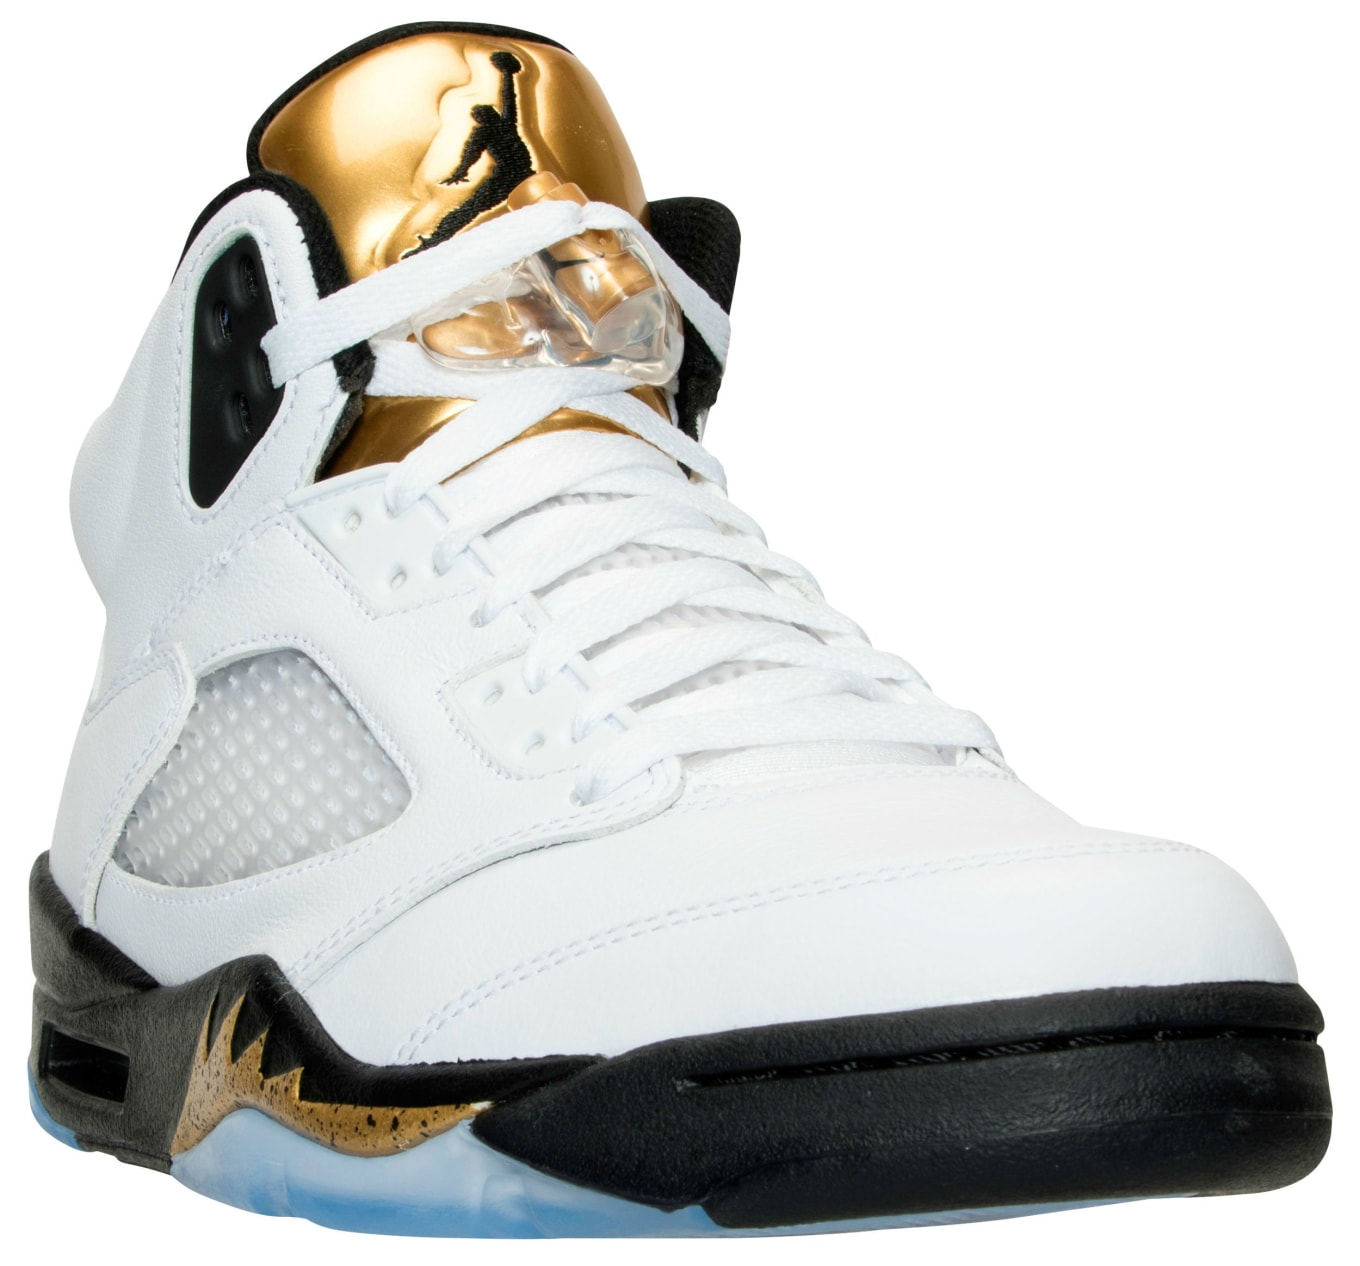 Air Jordan 5 Olympic Gold Sole Collector